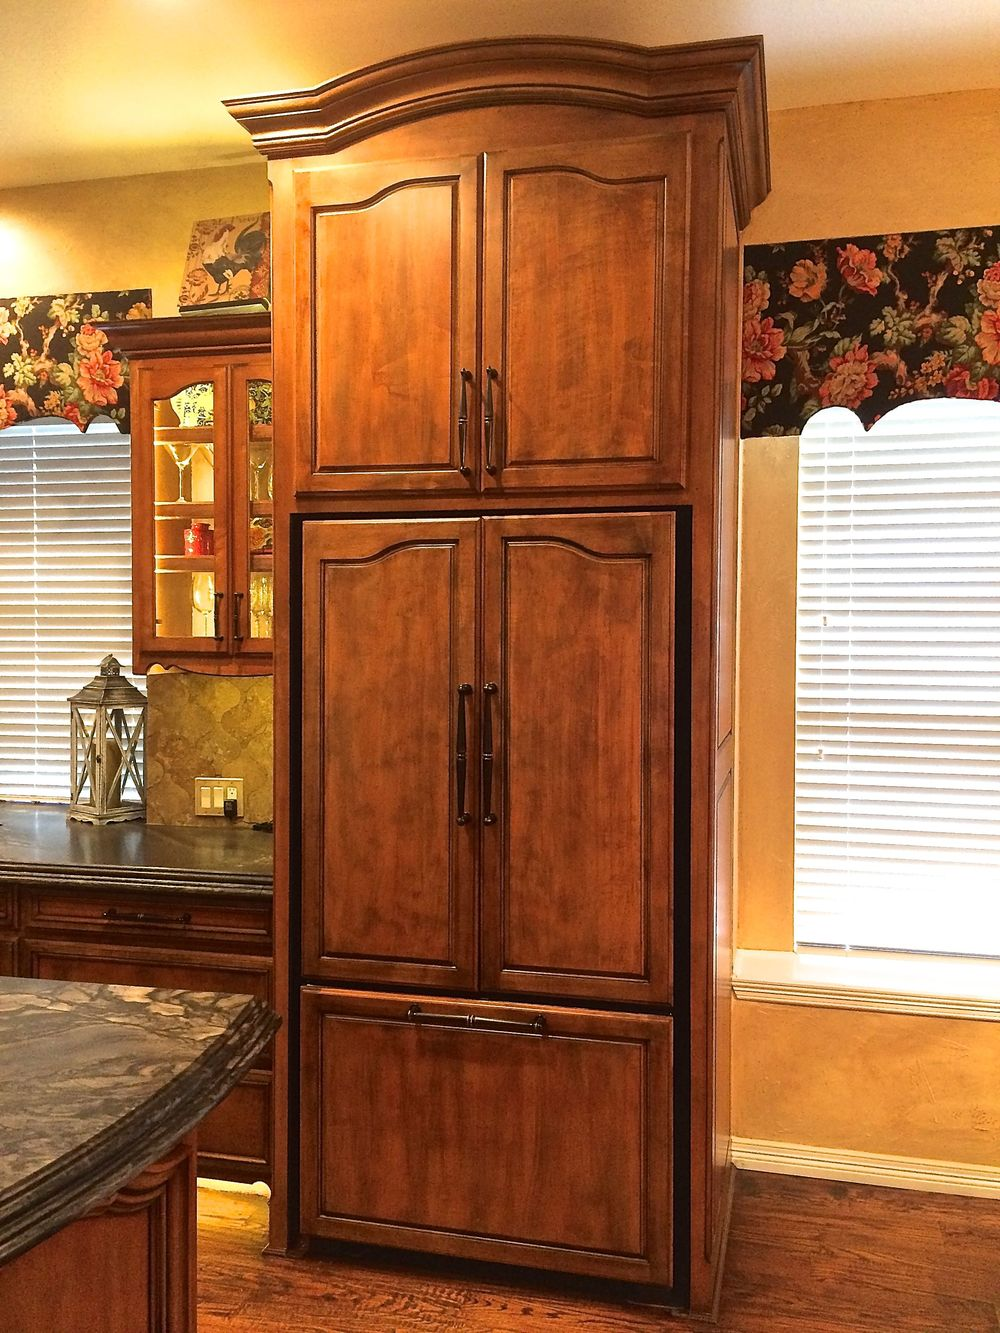 Paneled Refrigerator with Storage